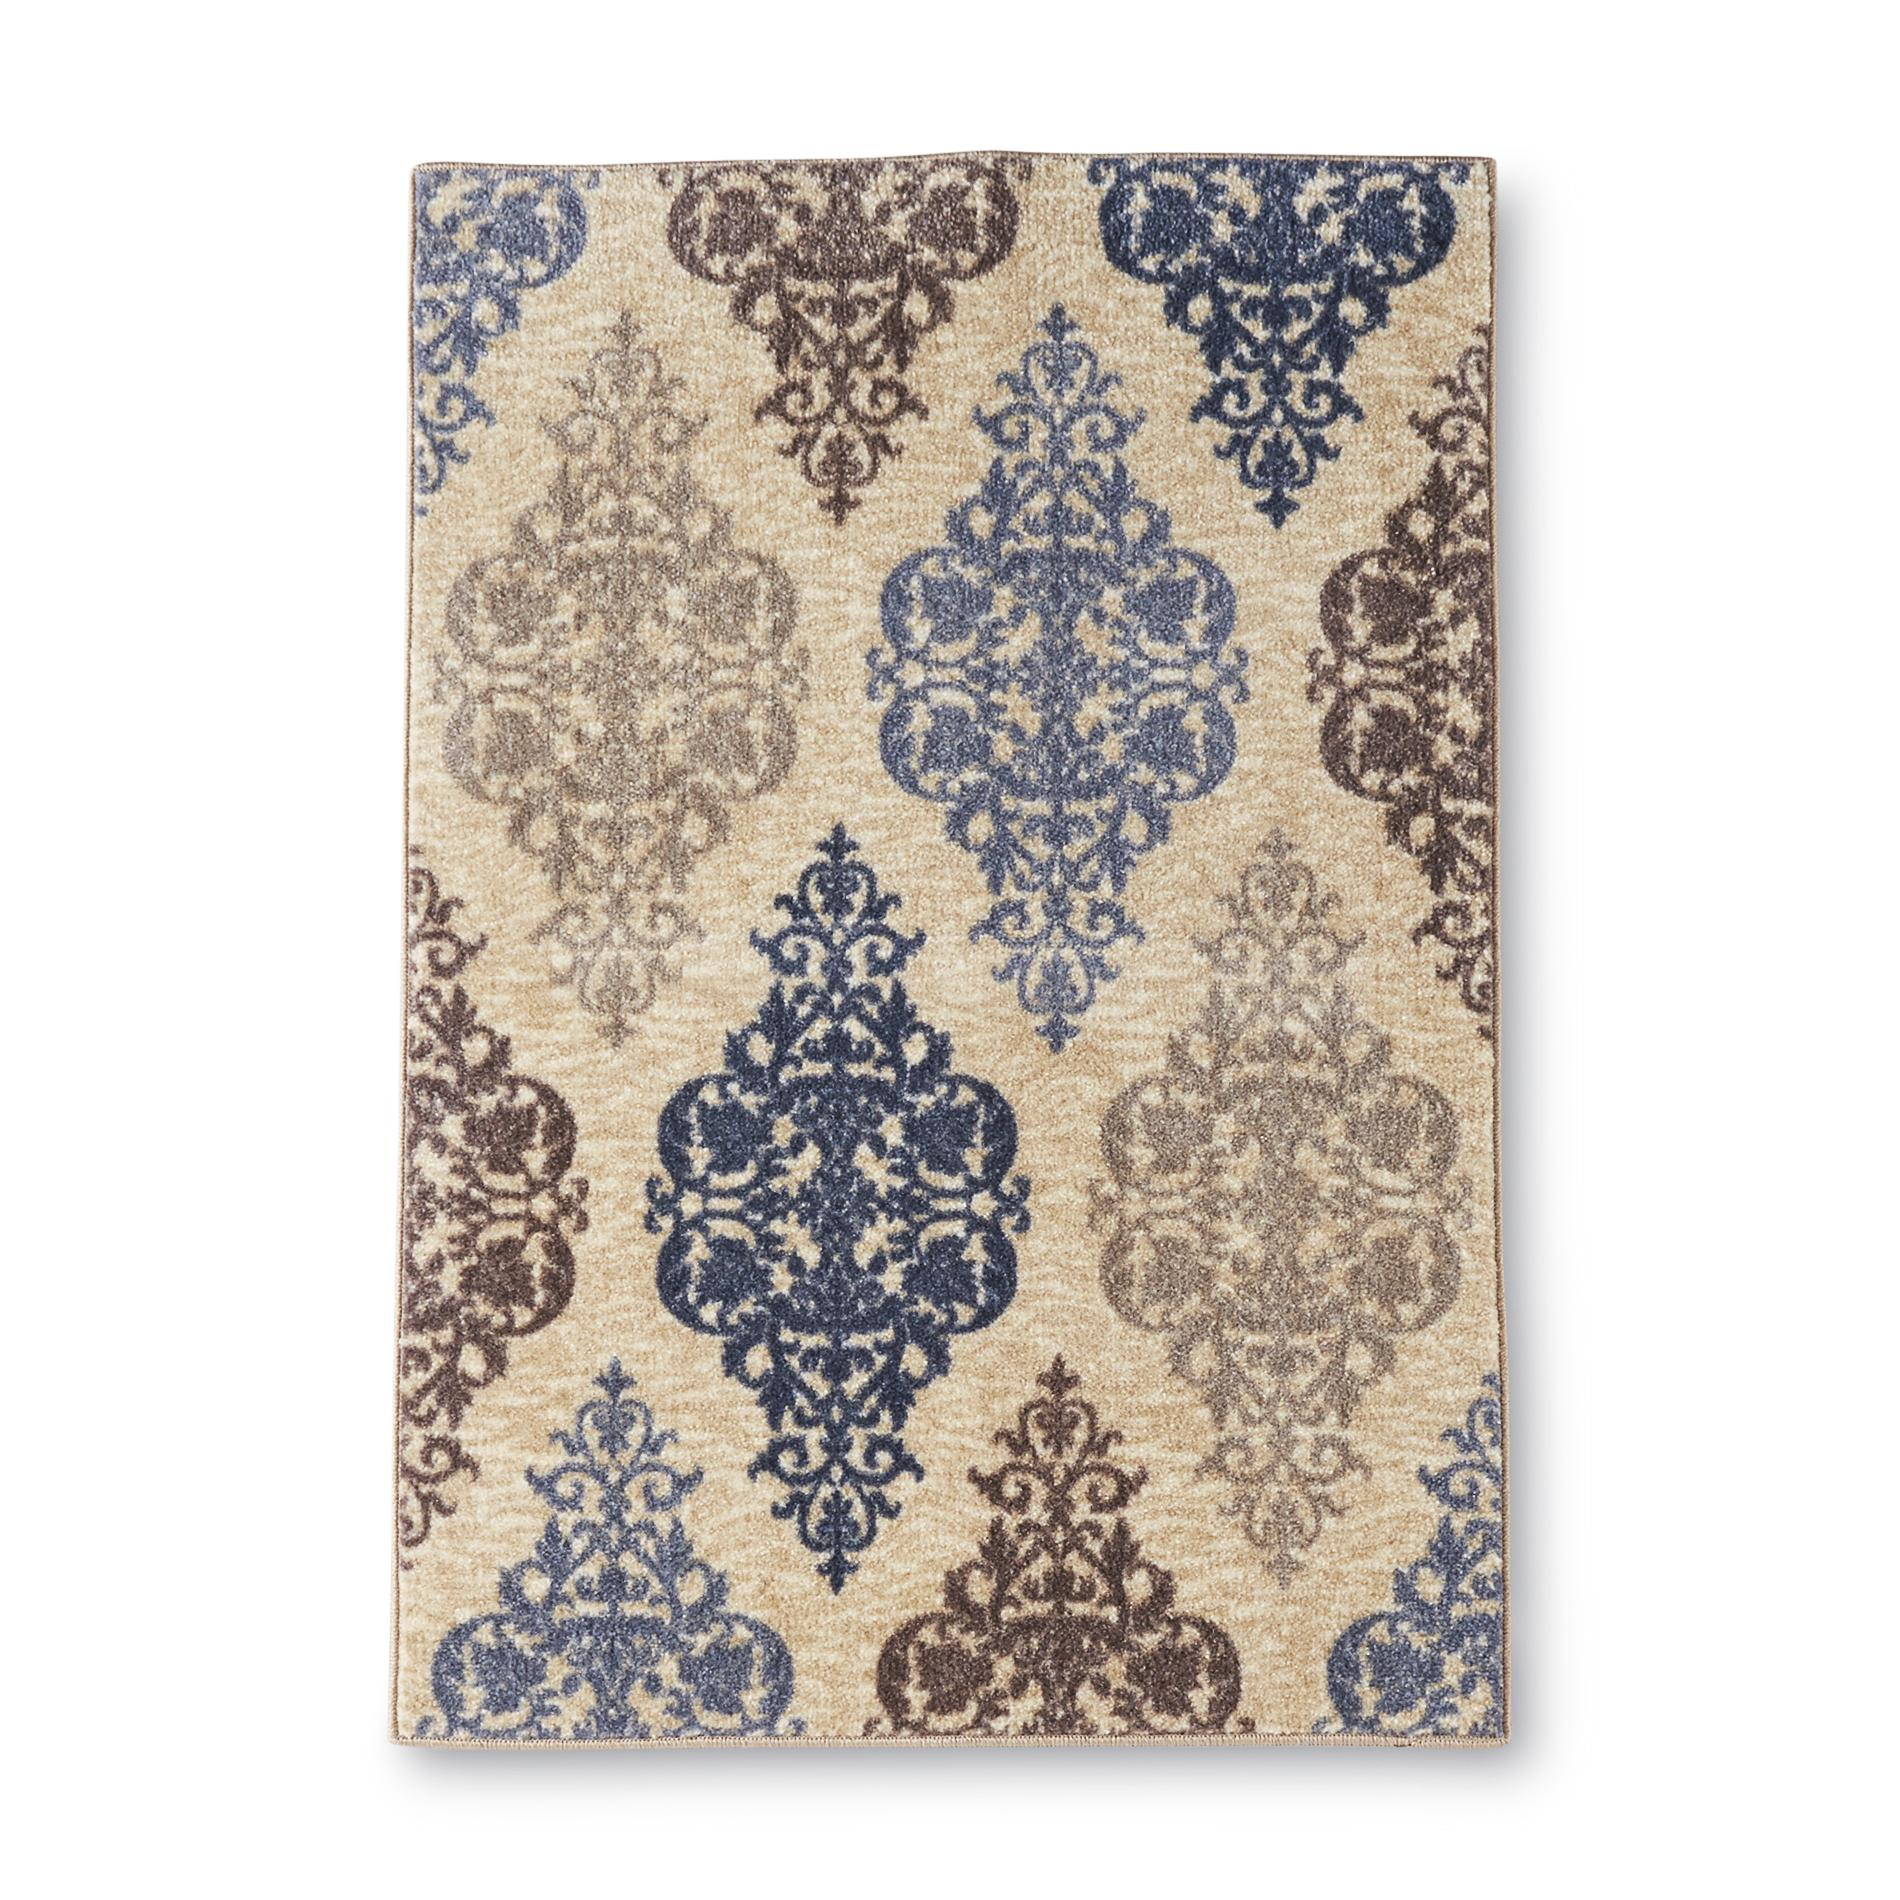 Essential Home Gallery Damask Medallion Accent Rug - 30 x 46